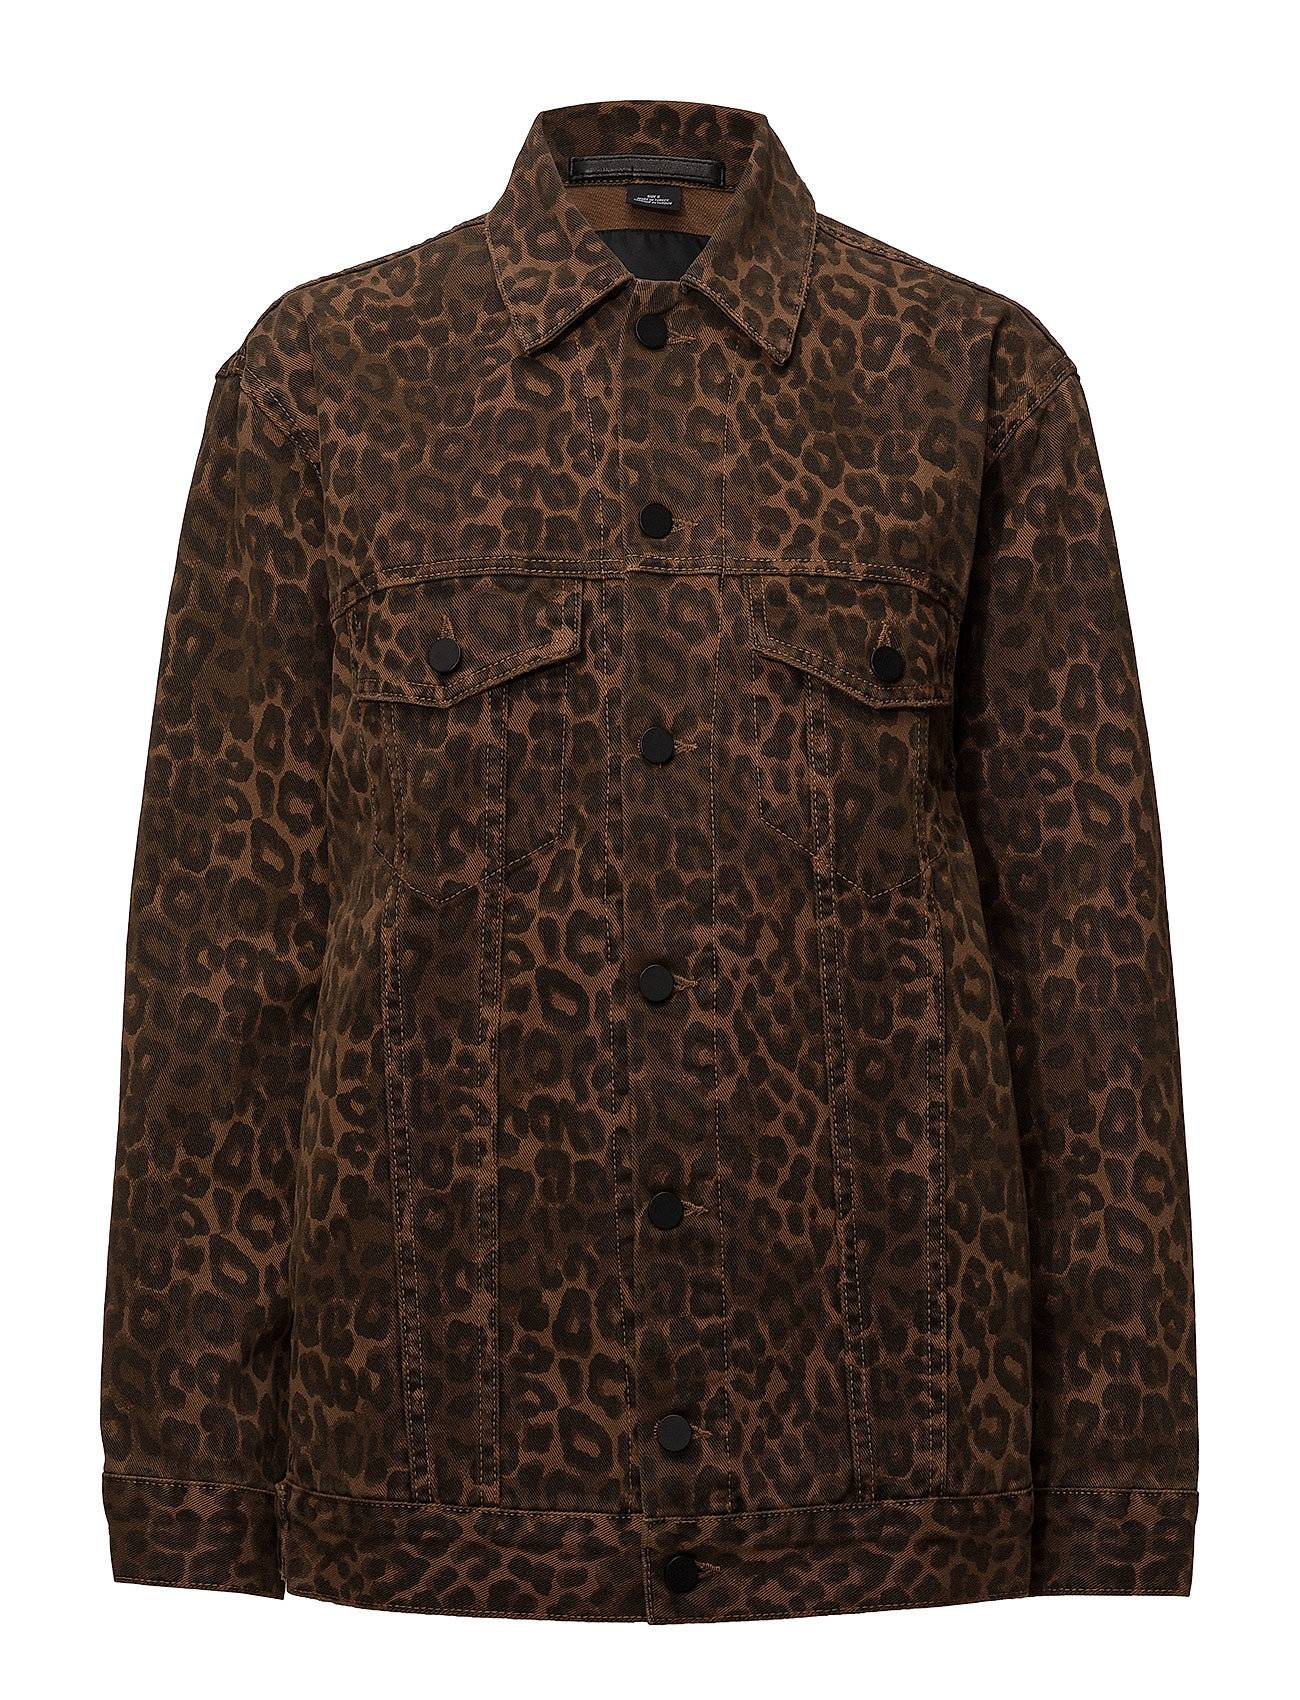 T by Alexander Wang Daze Jacket Tan Leopard Print